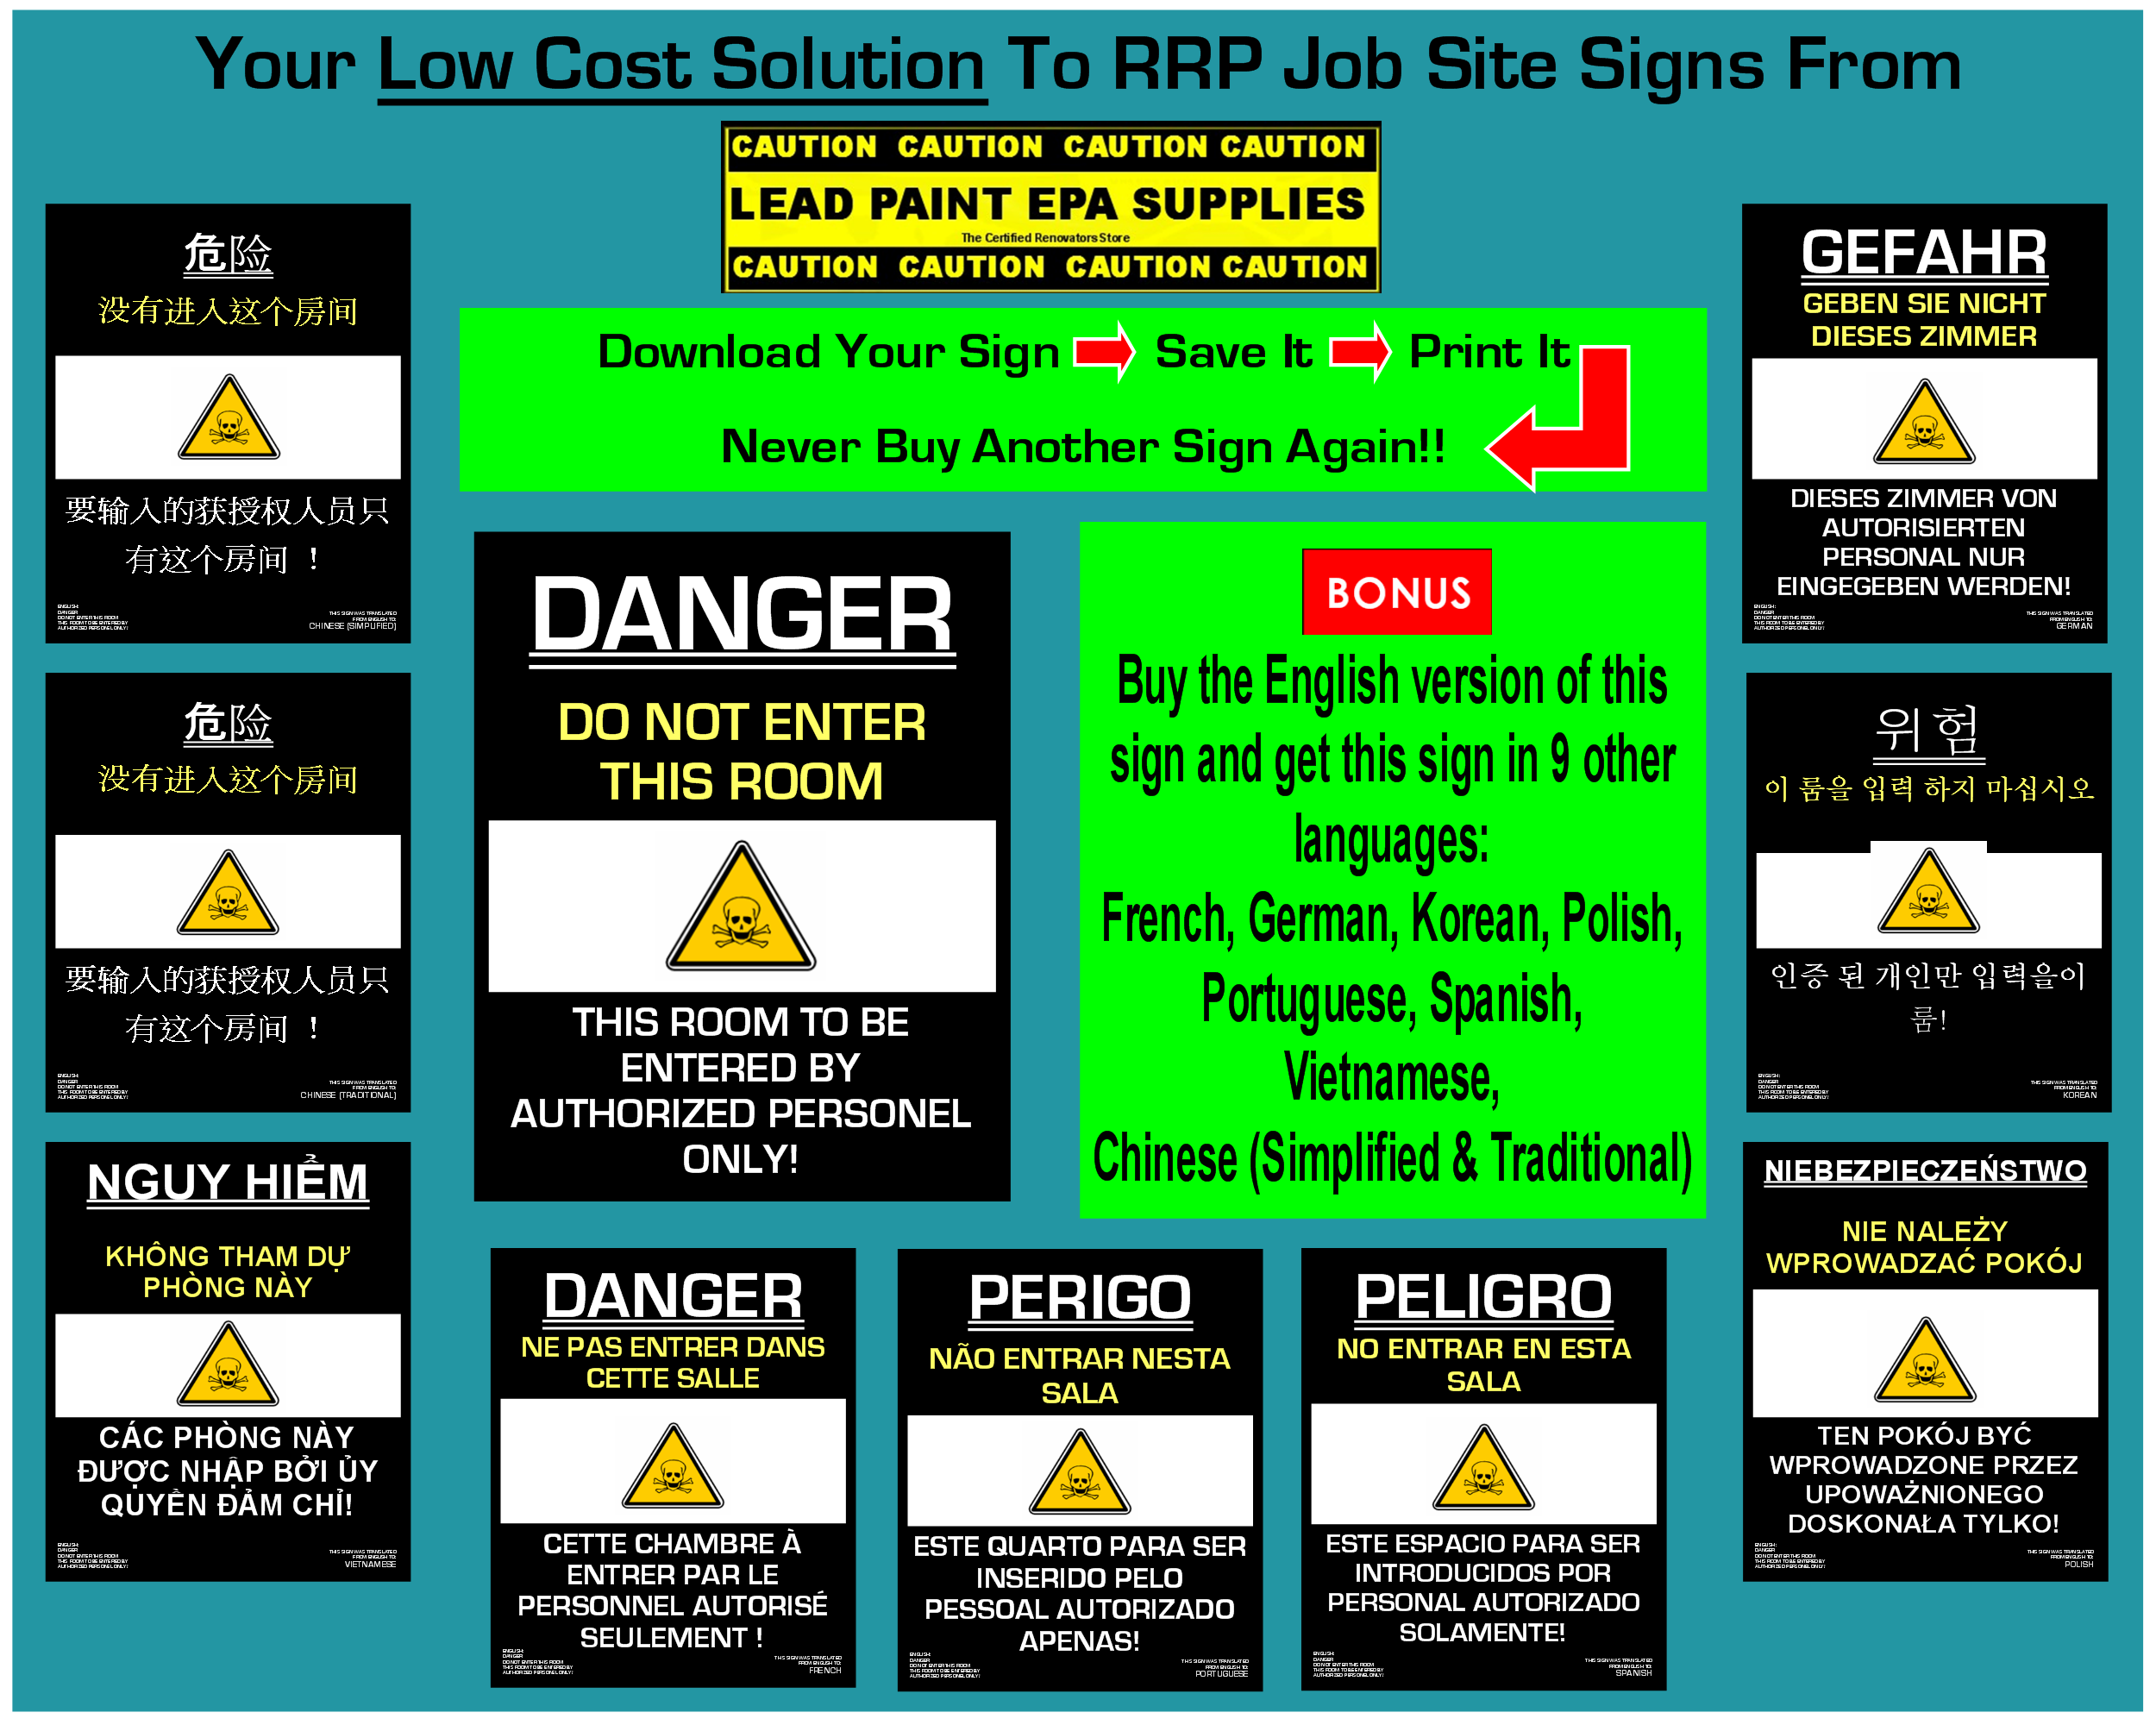 banner-for-danger-do-not-enter-room-auth-personel-only-grouped.png